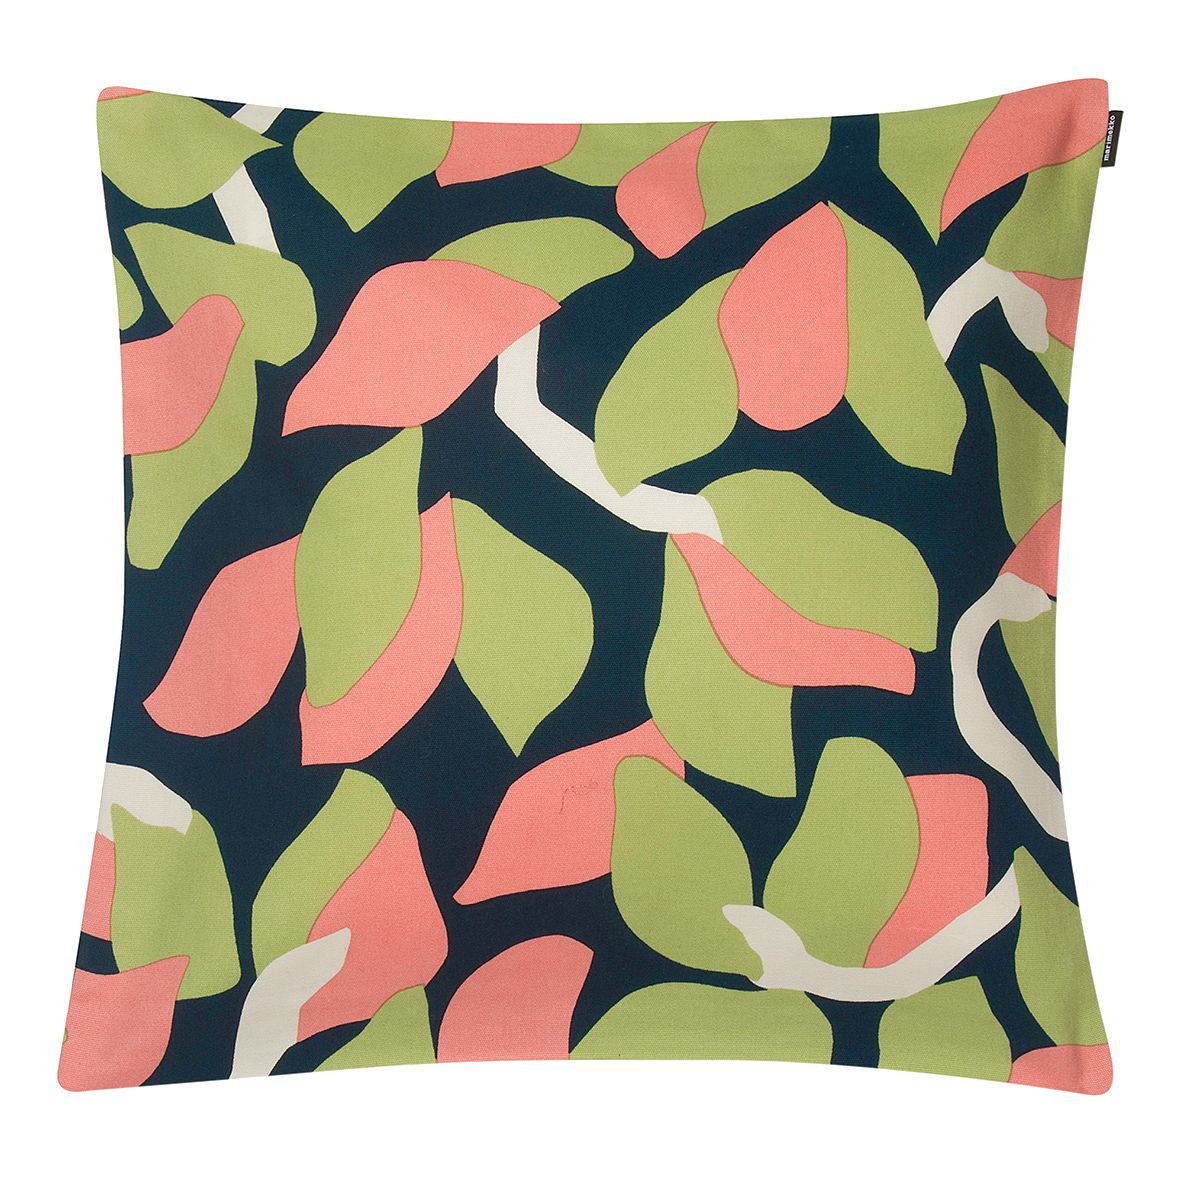 Marimekko Kukero Medium Navy / Pink / Green Throw Pillow   Throw